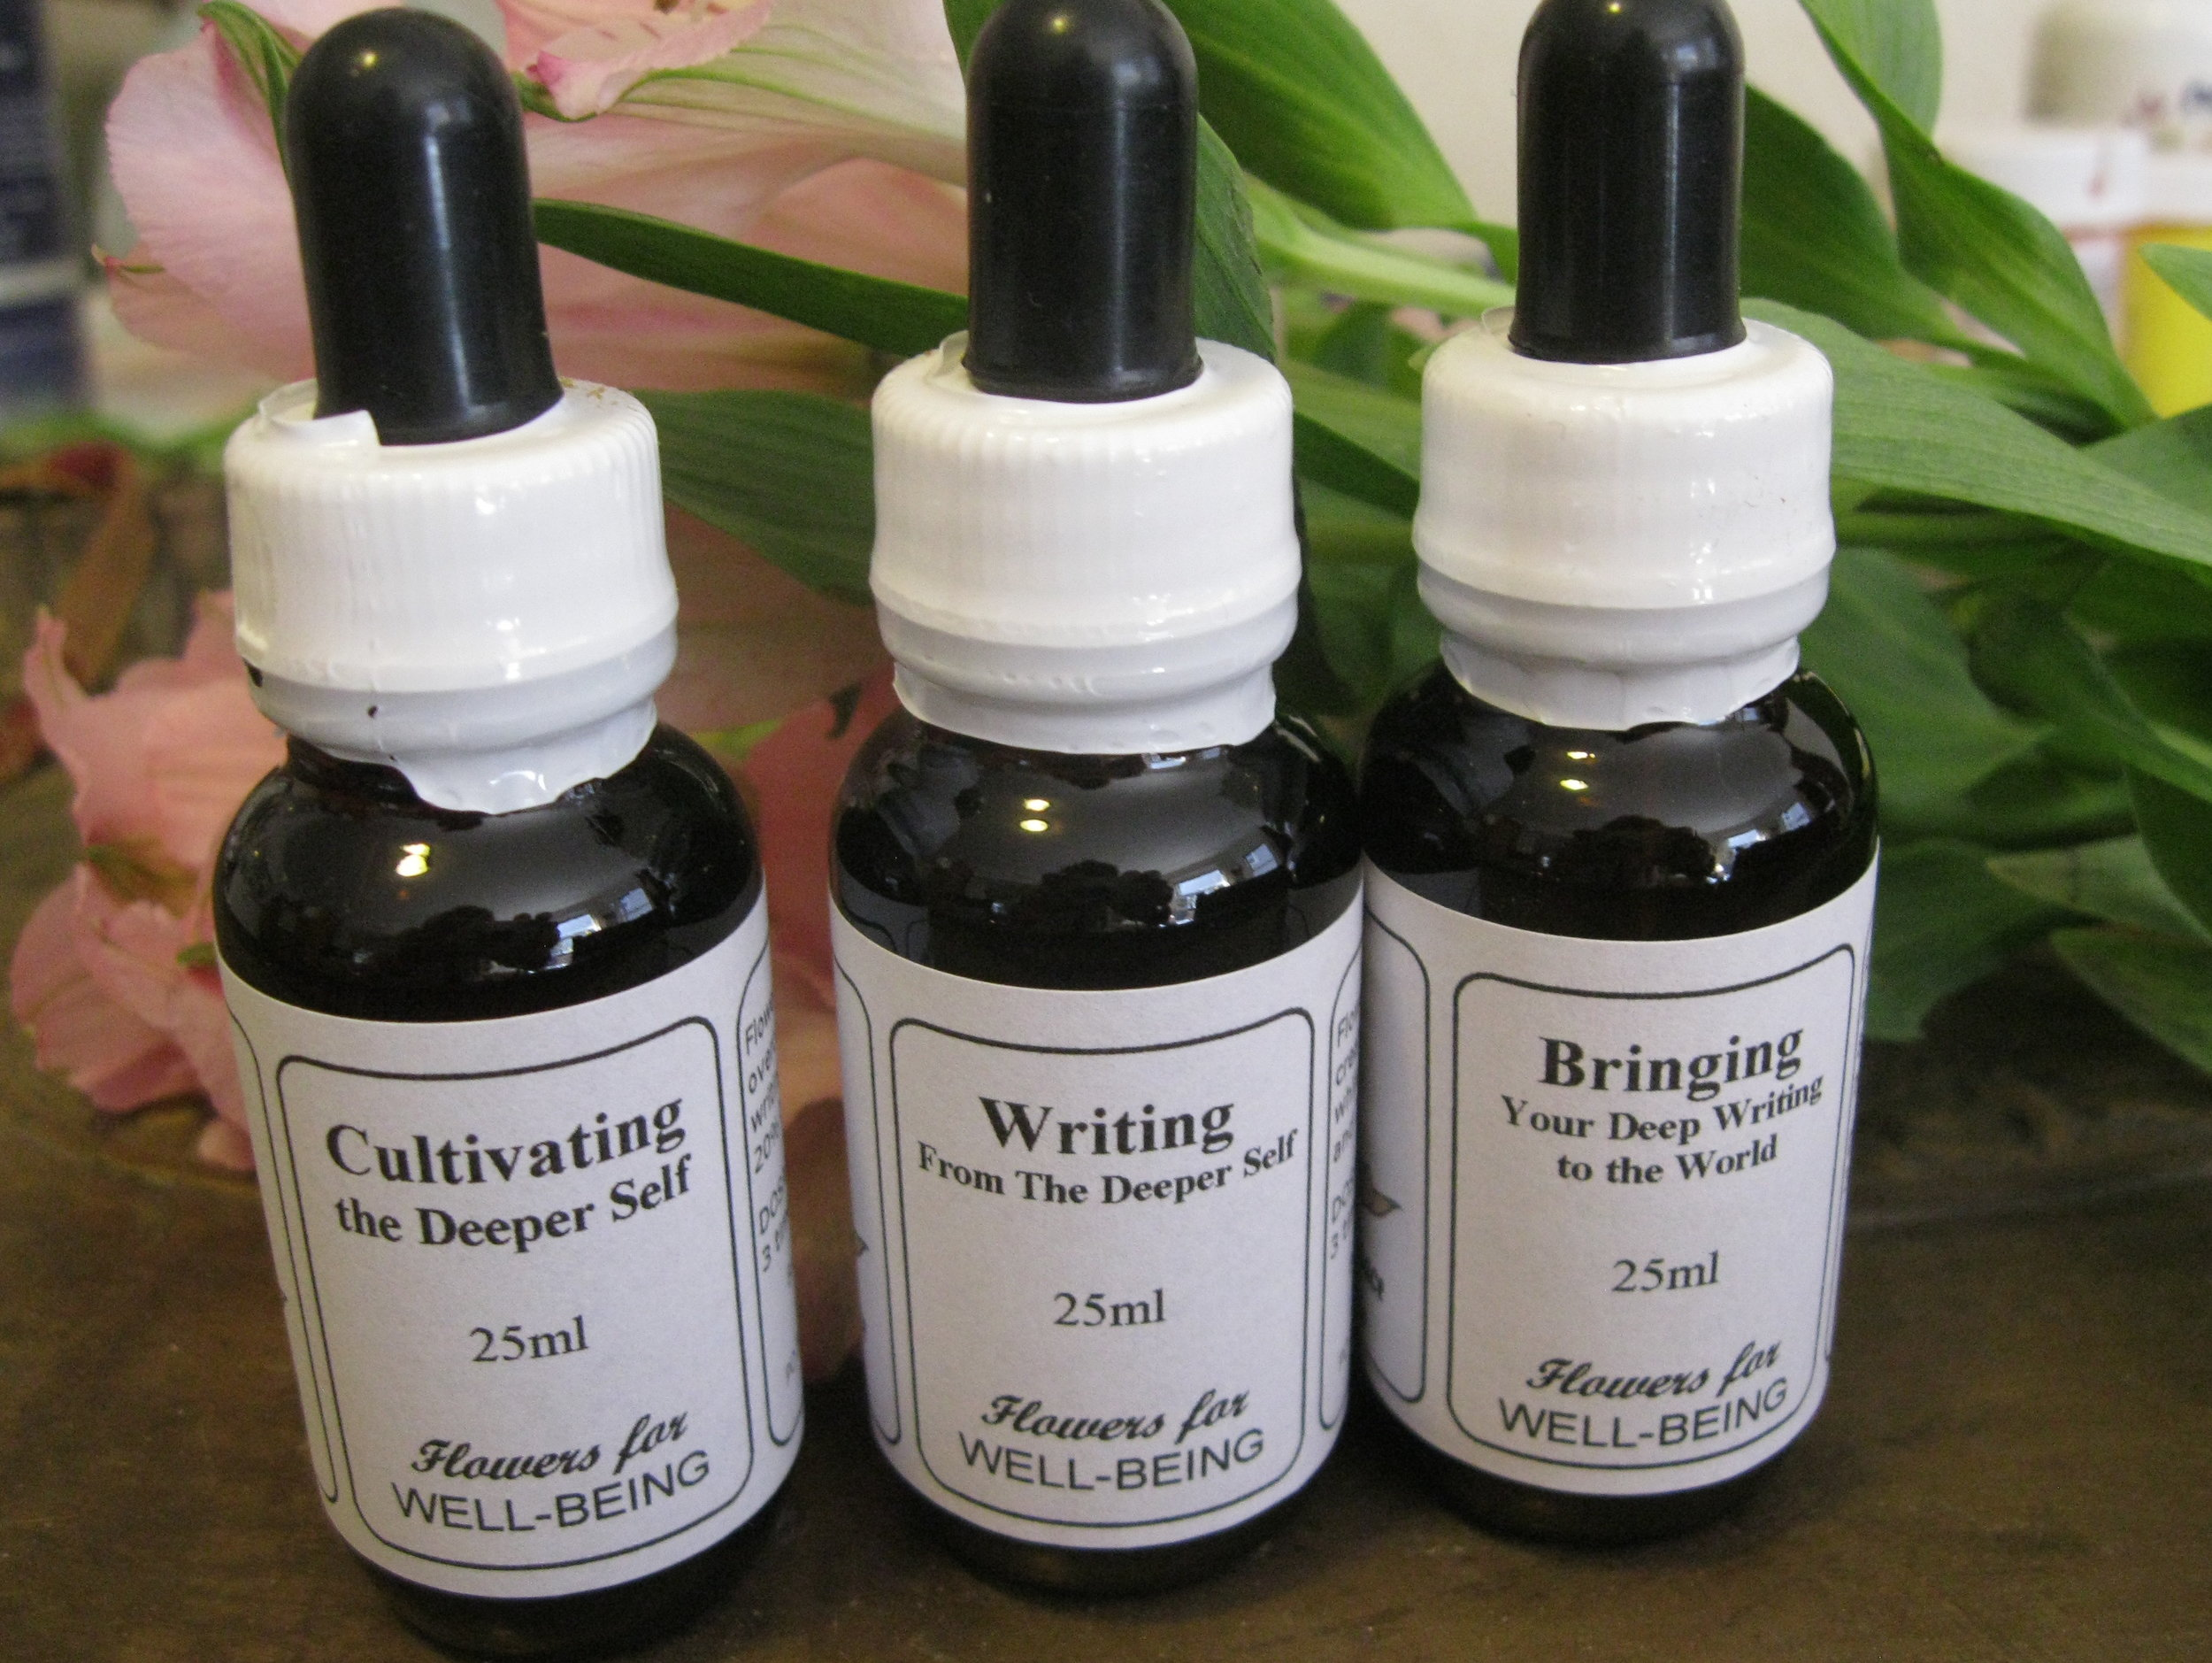 "🌸 Sacred Space Essentials — an Australian flower essence company whose remedies I have long used and enjoyed — has collaborated with me to design a unique series of flower essence remedies exclusively for the Rose Press ""Enhancements for Writers"" Collection. Both of us are dedicated to enhance your flowering through your writing. -"